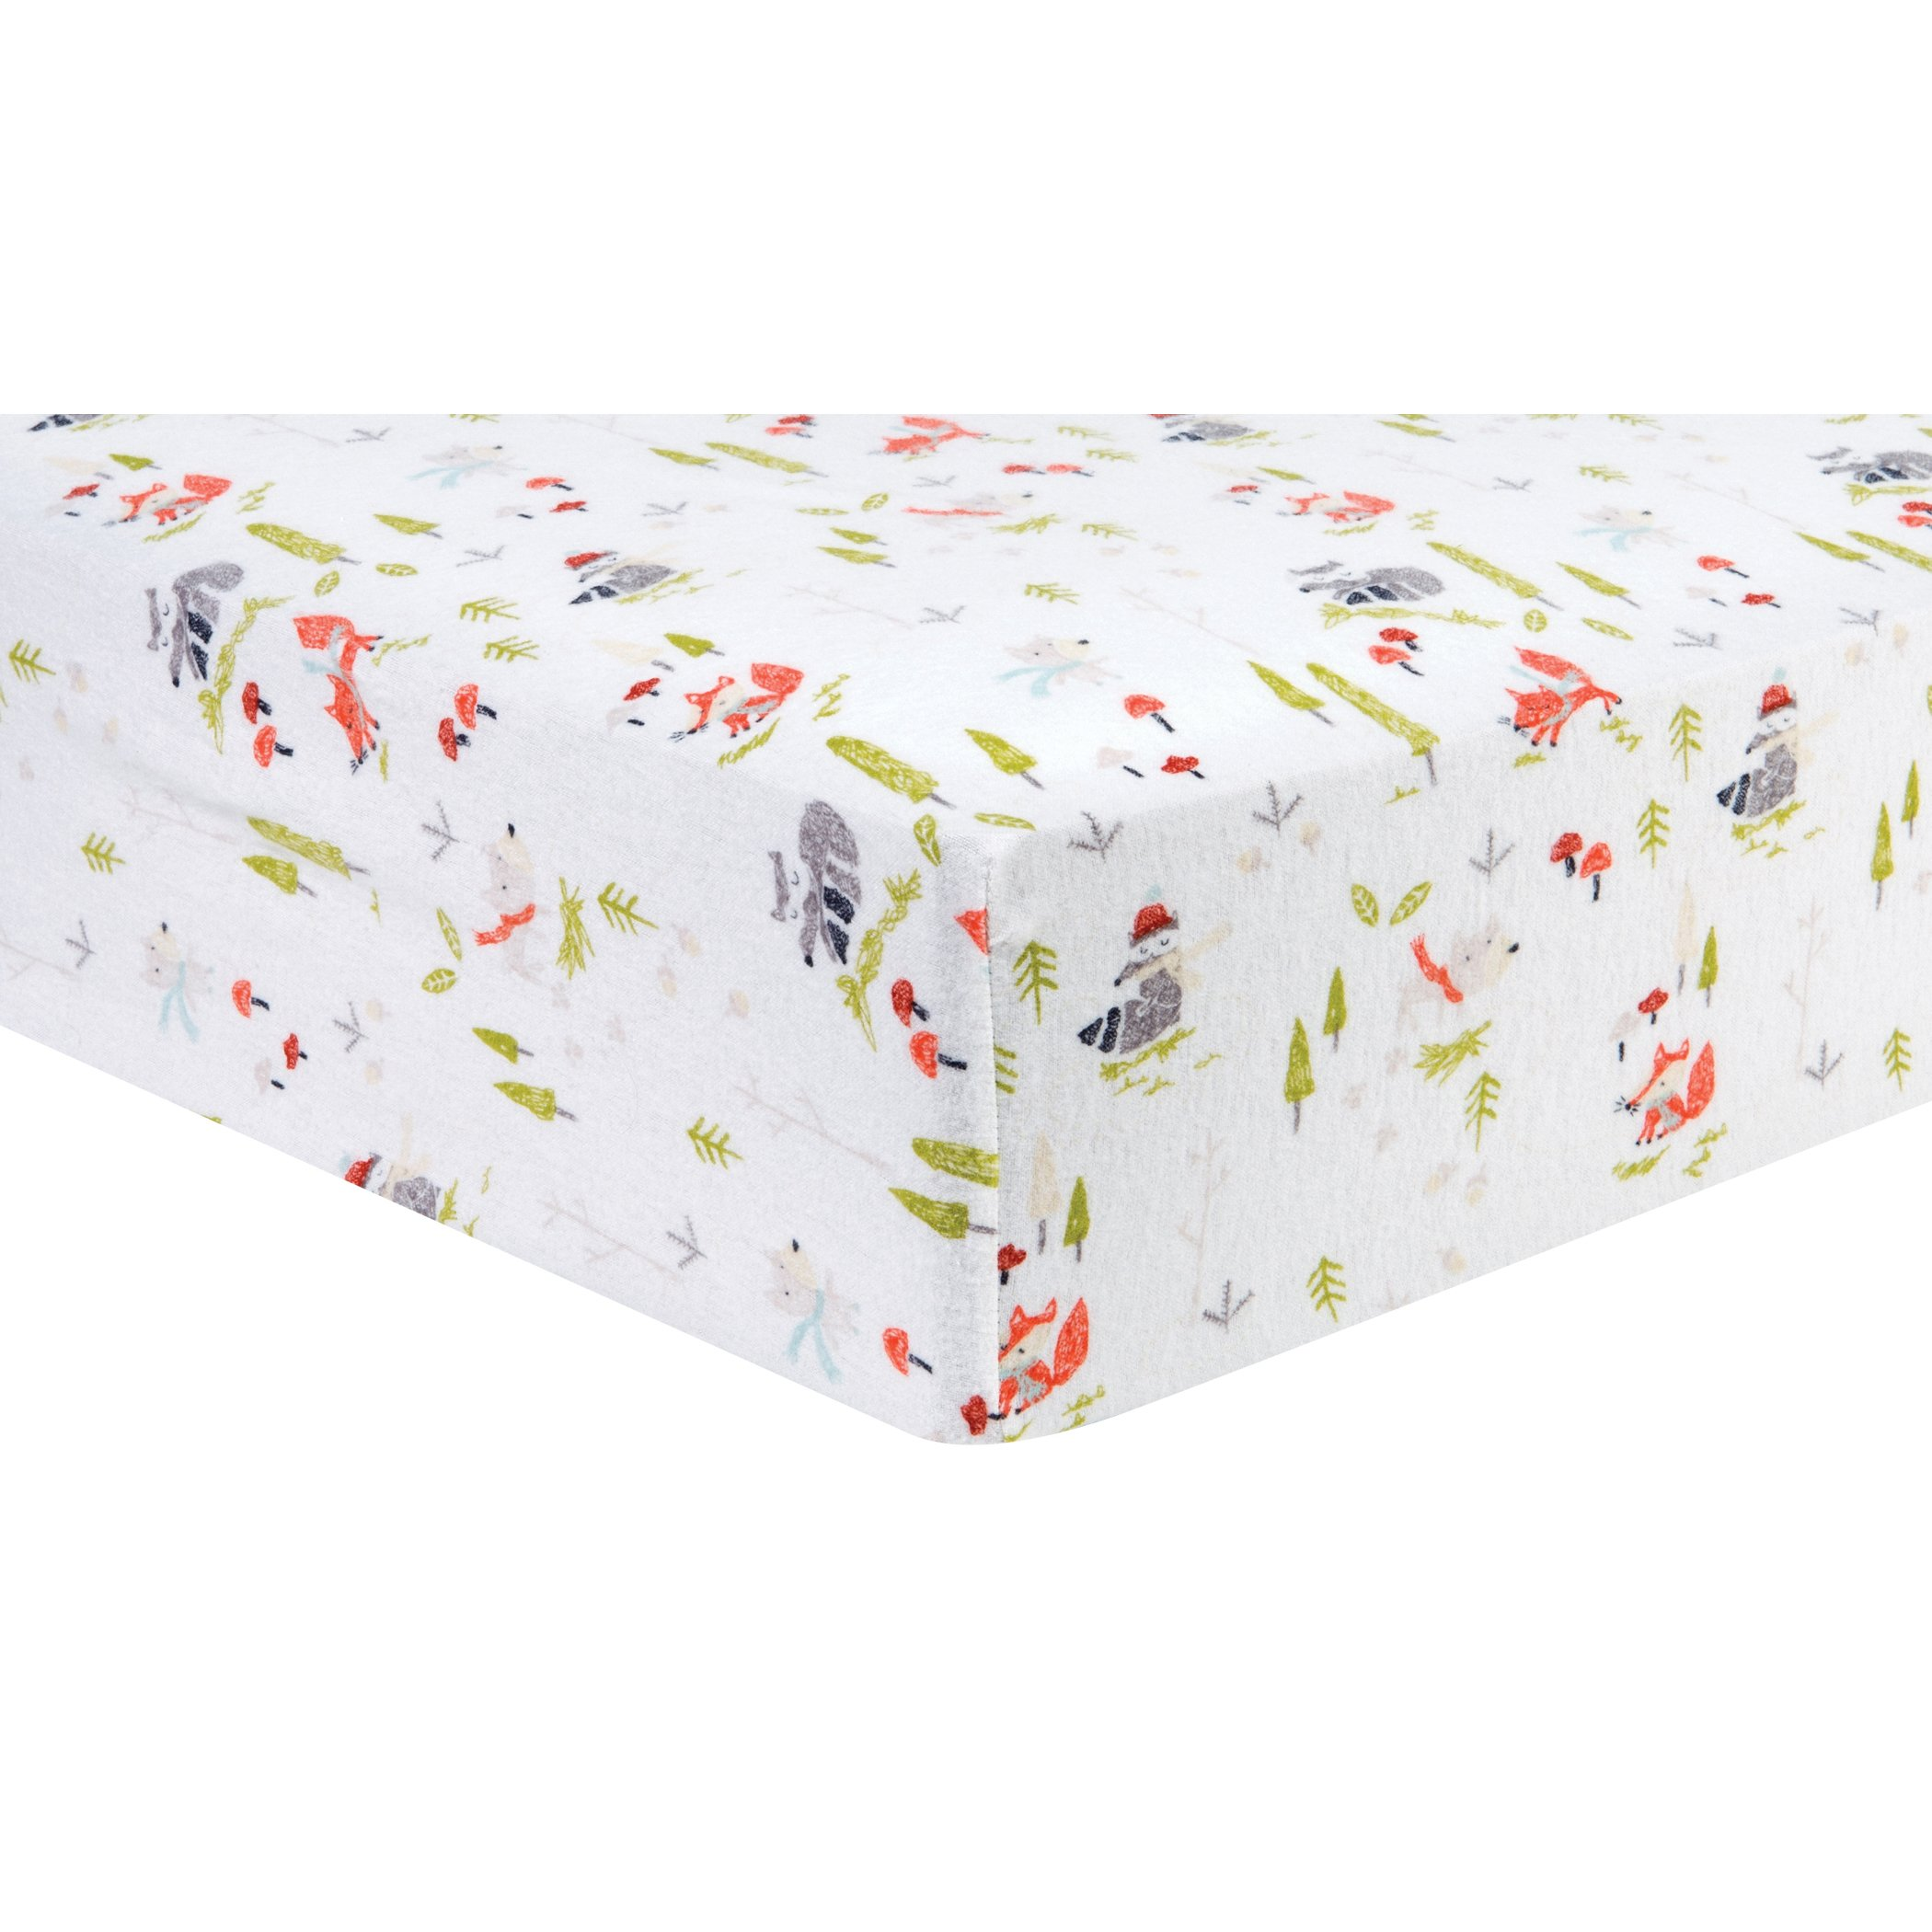 Trend Lab Winter Woods Deluxe Flannel Fitted Crib Sheet, Multi